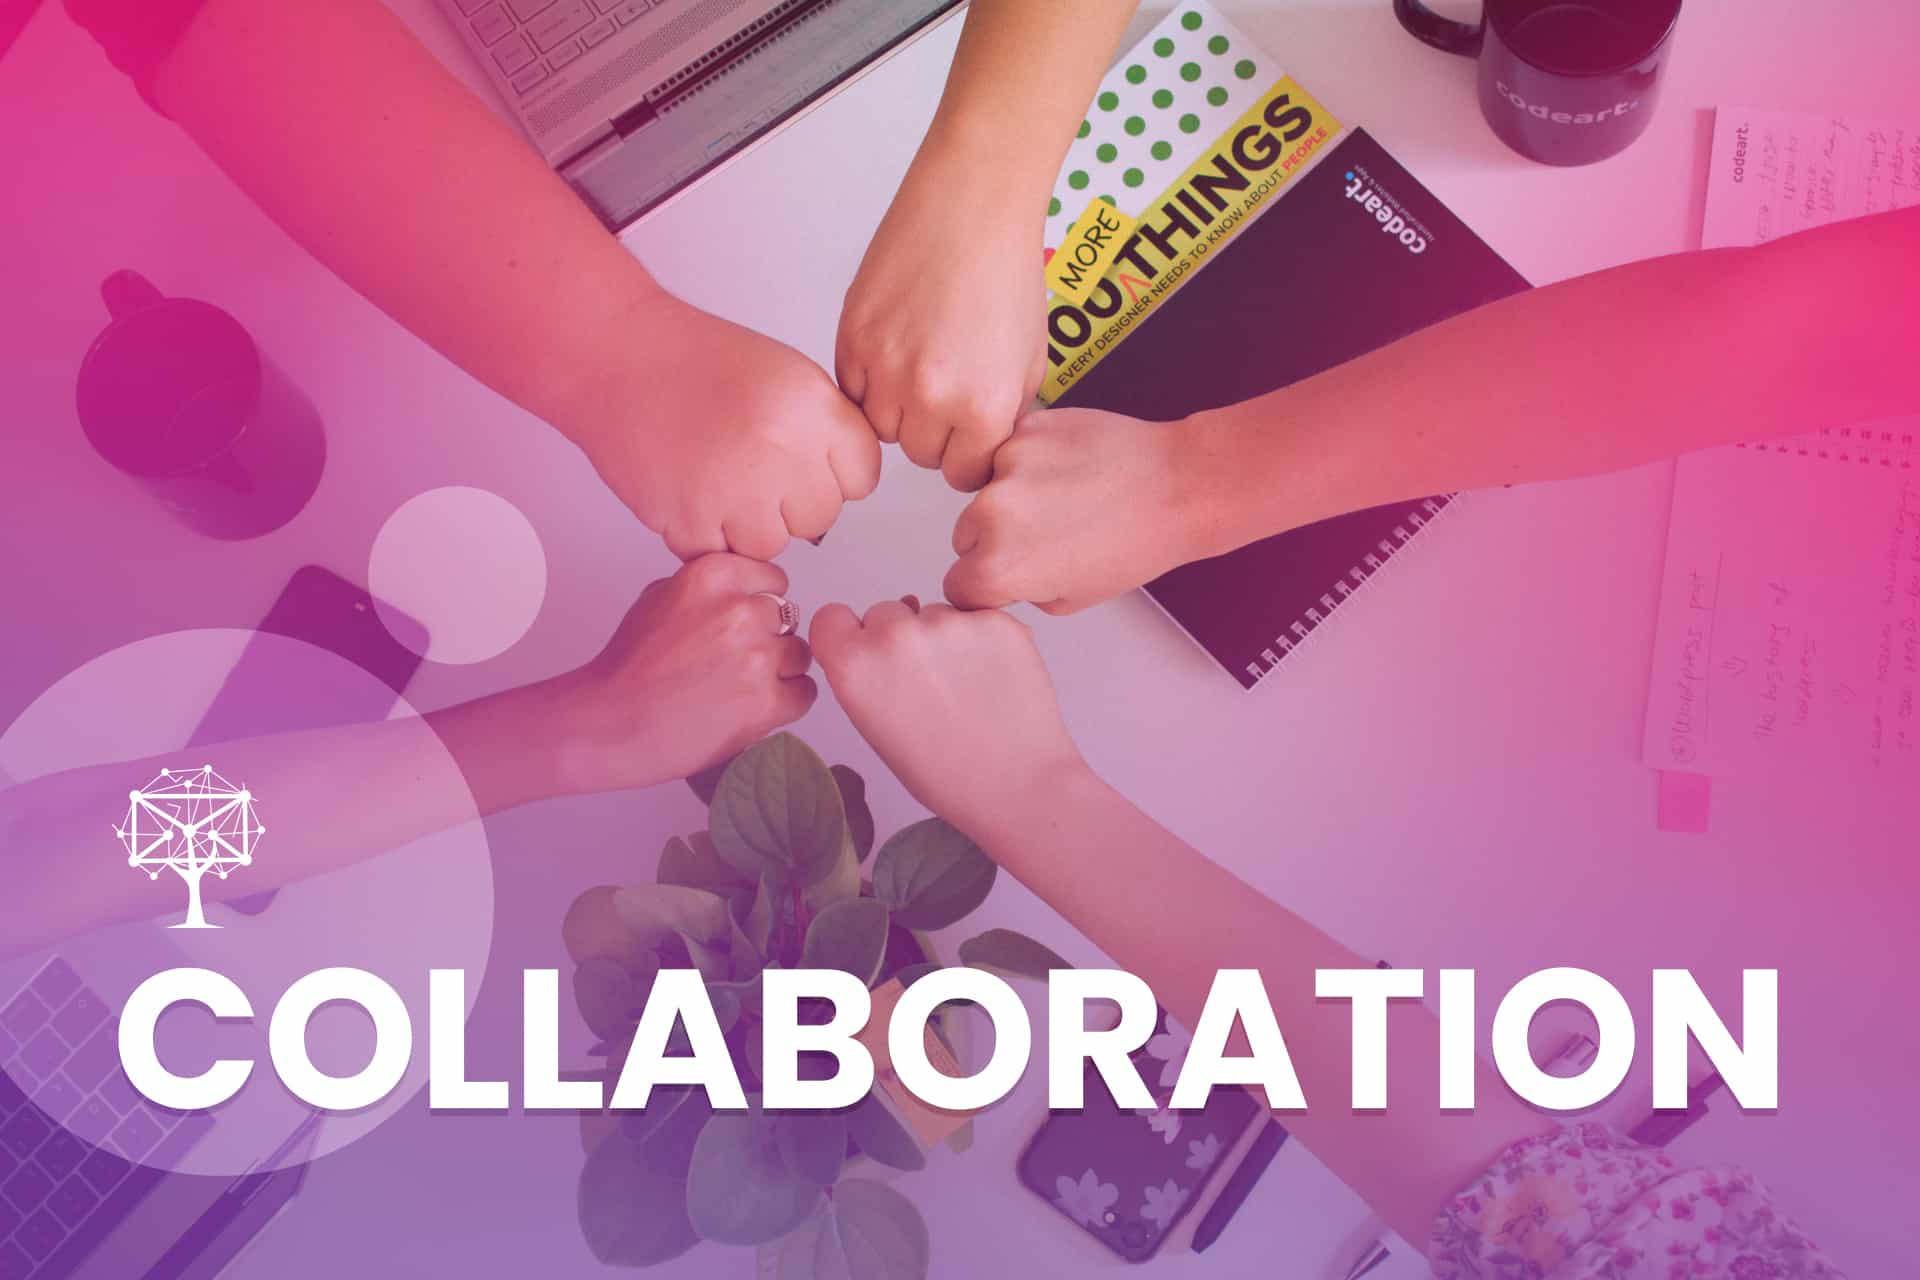 Collaboration is a customer service skill